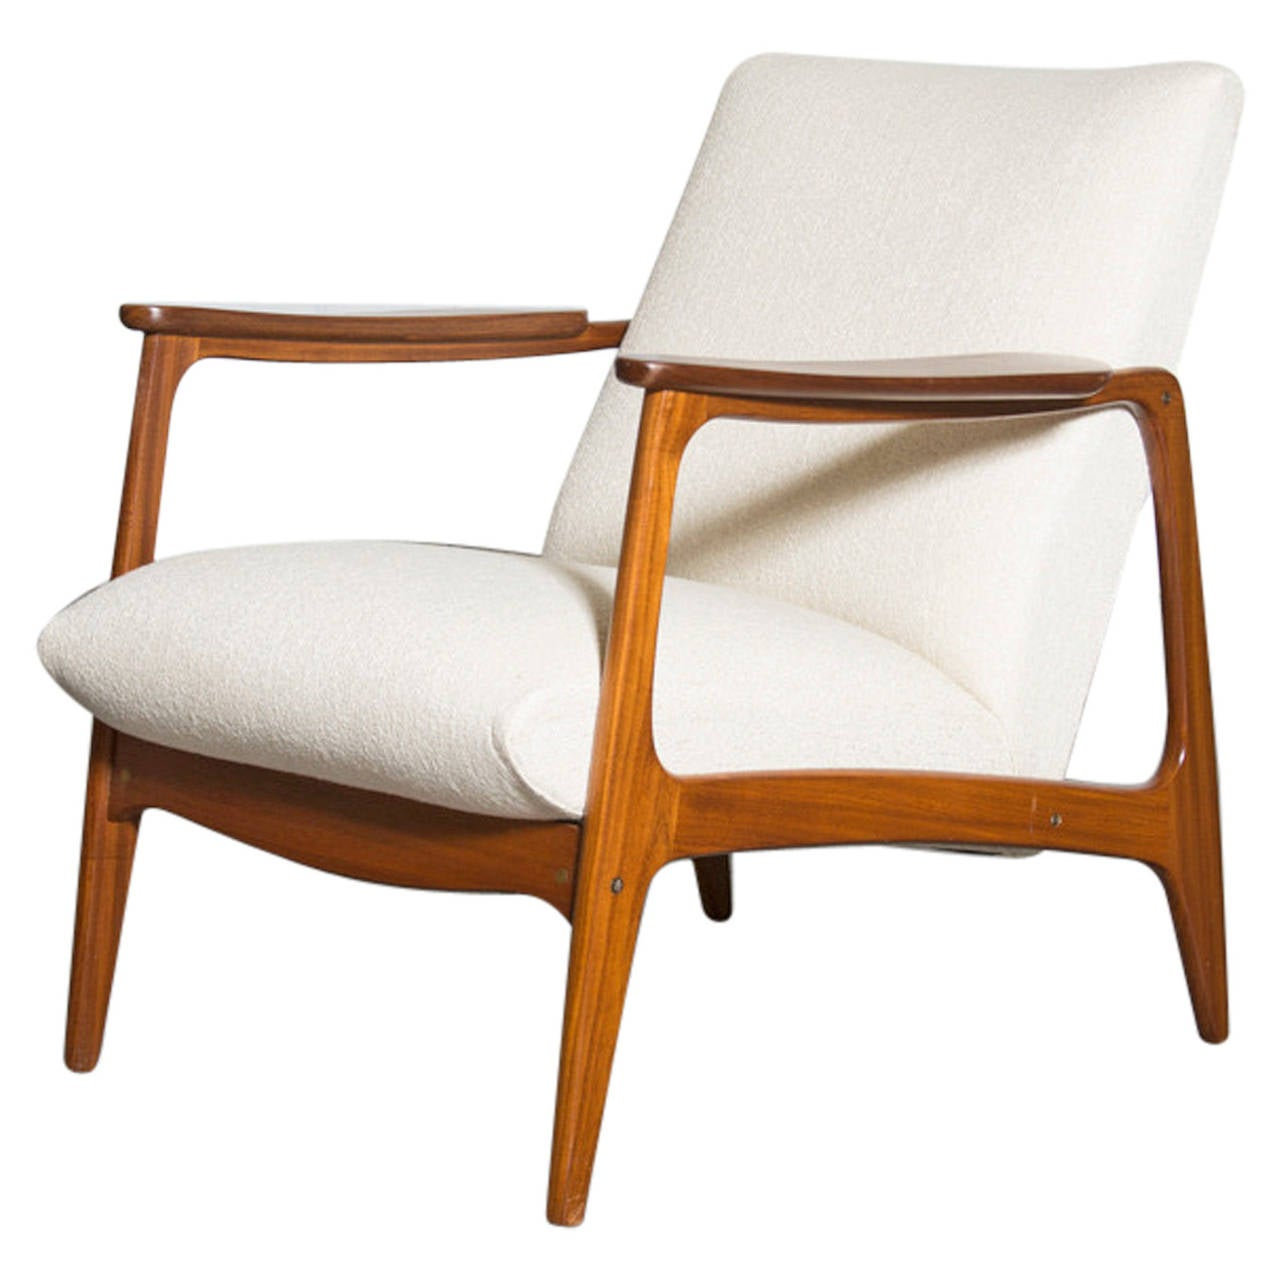 Mid century teak upholstered lounge chair at 1stdibs for Mid century modern upholstered chair